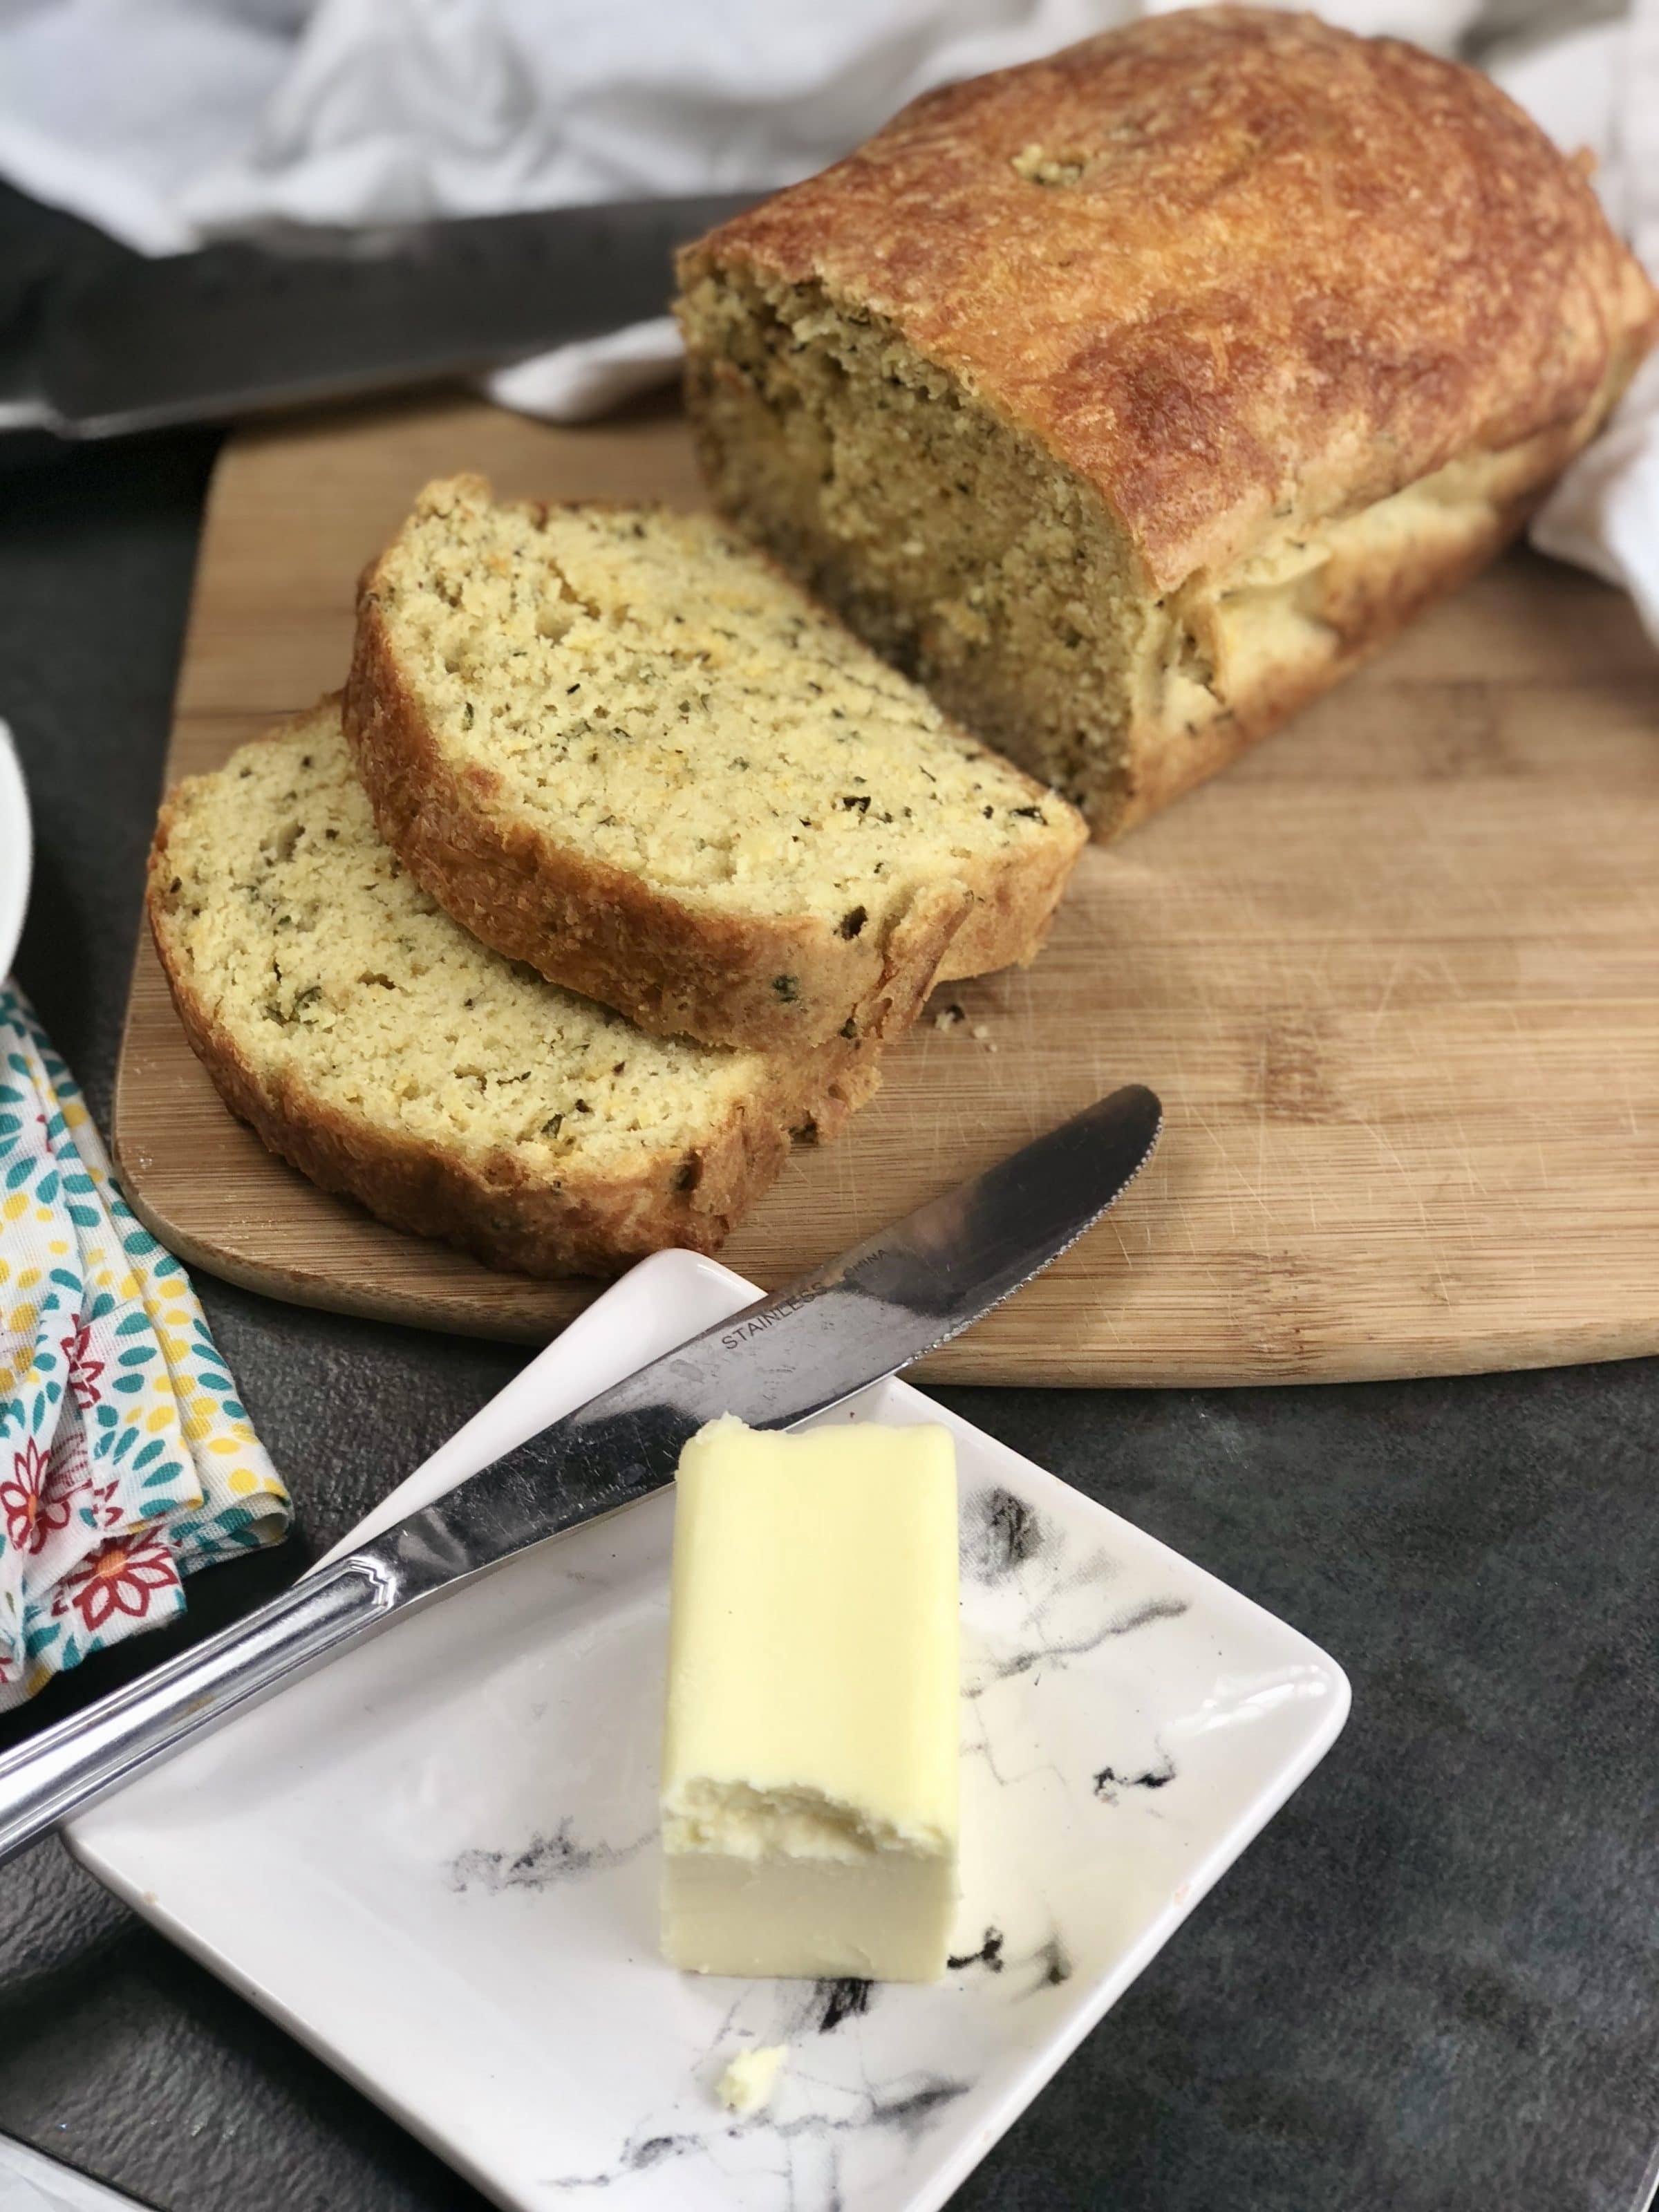 This cheddar garlic herb keto bread is a must make if you are following the keto diet. It is a keto bread that uses almond flour and a nice low carb bread to fill those cravings. #keto #lowcarb #ketobread #cheddargarlicherb